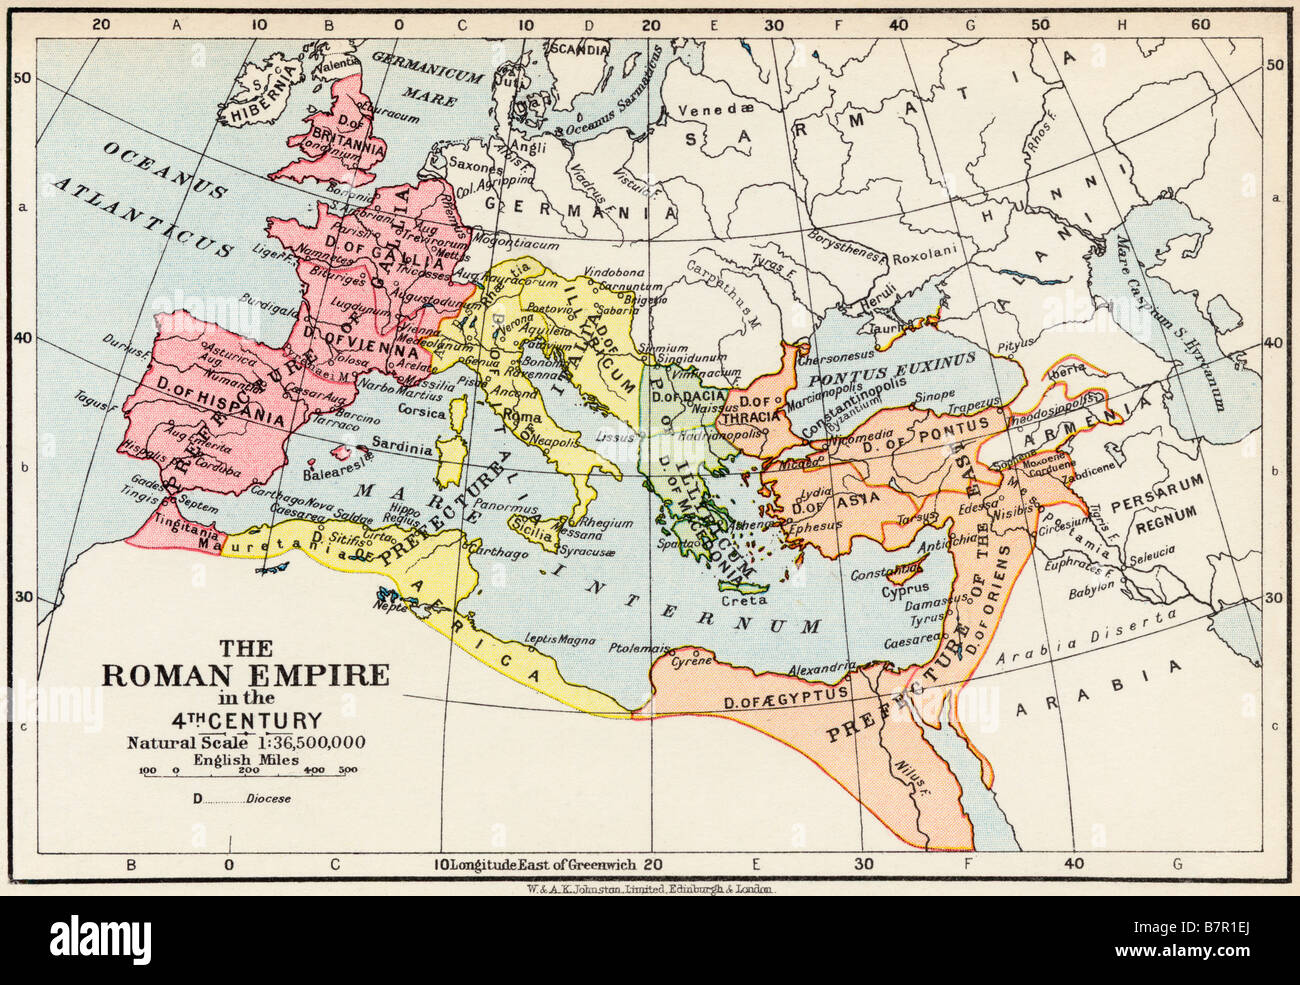 Map of the Roman Empire in the 4th Century - Stock Image